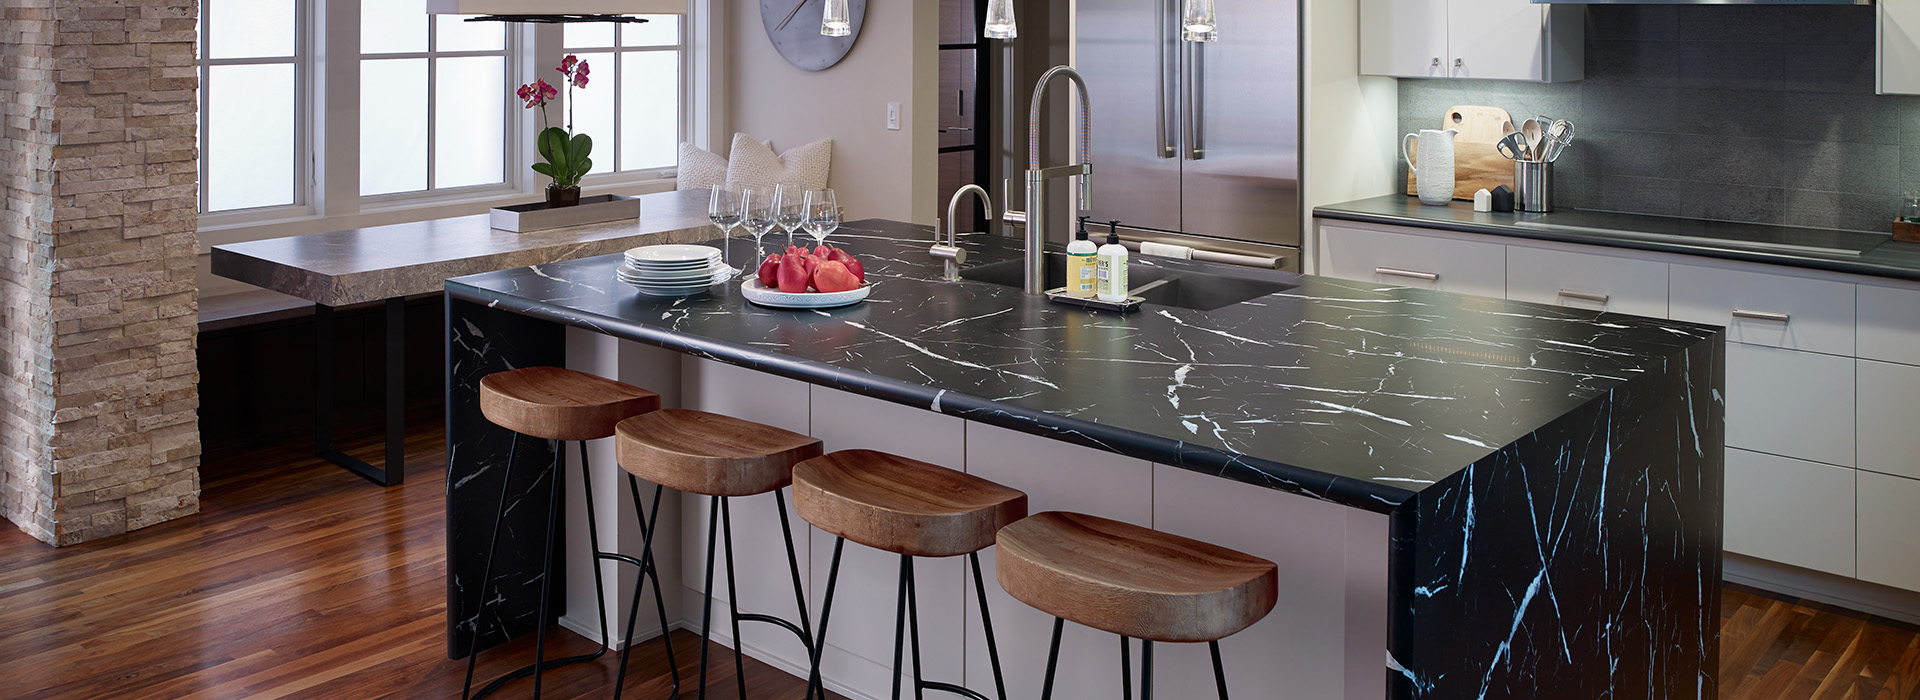 Breakfast bar kitchen island countertop 7403 Nero Marquina 180fx